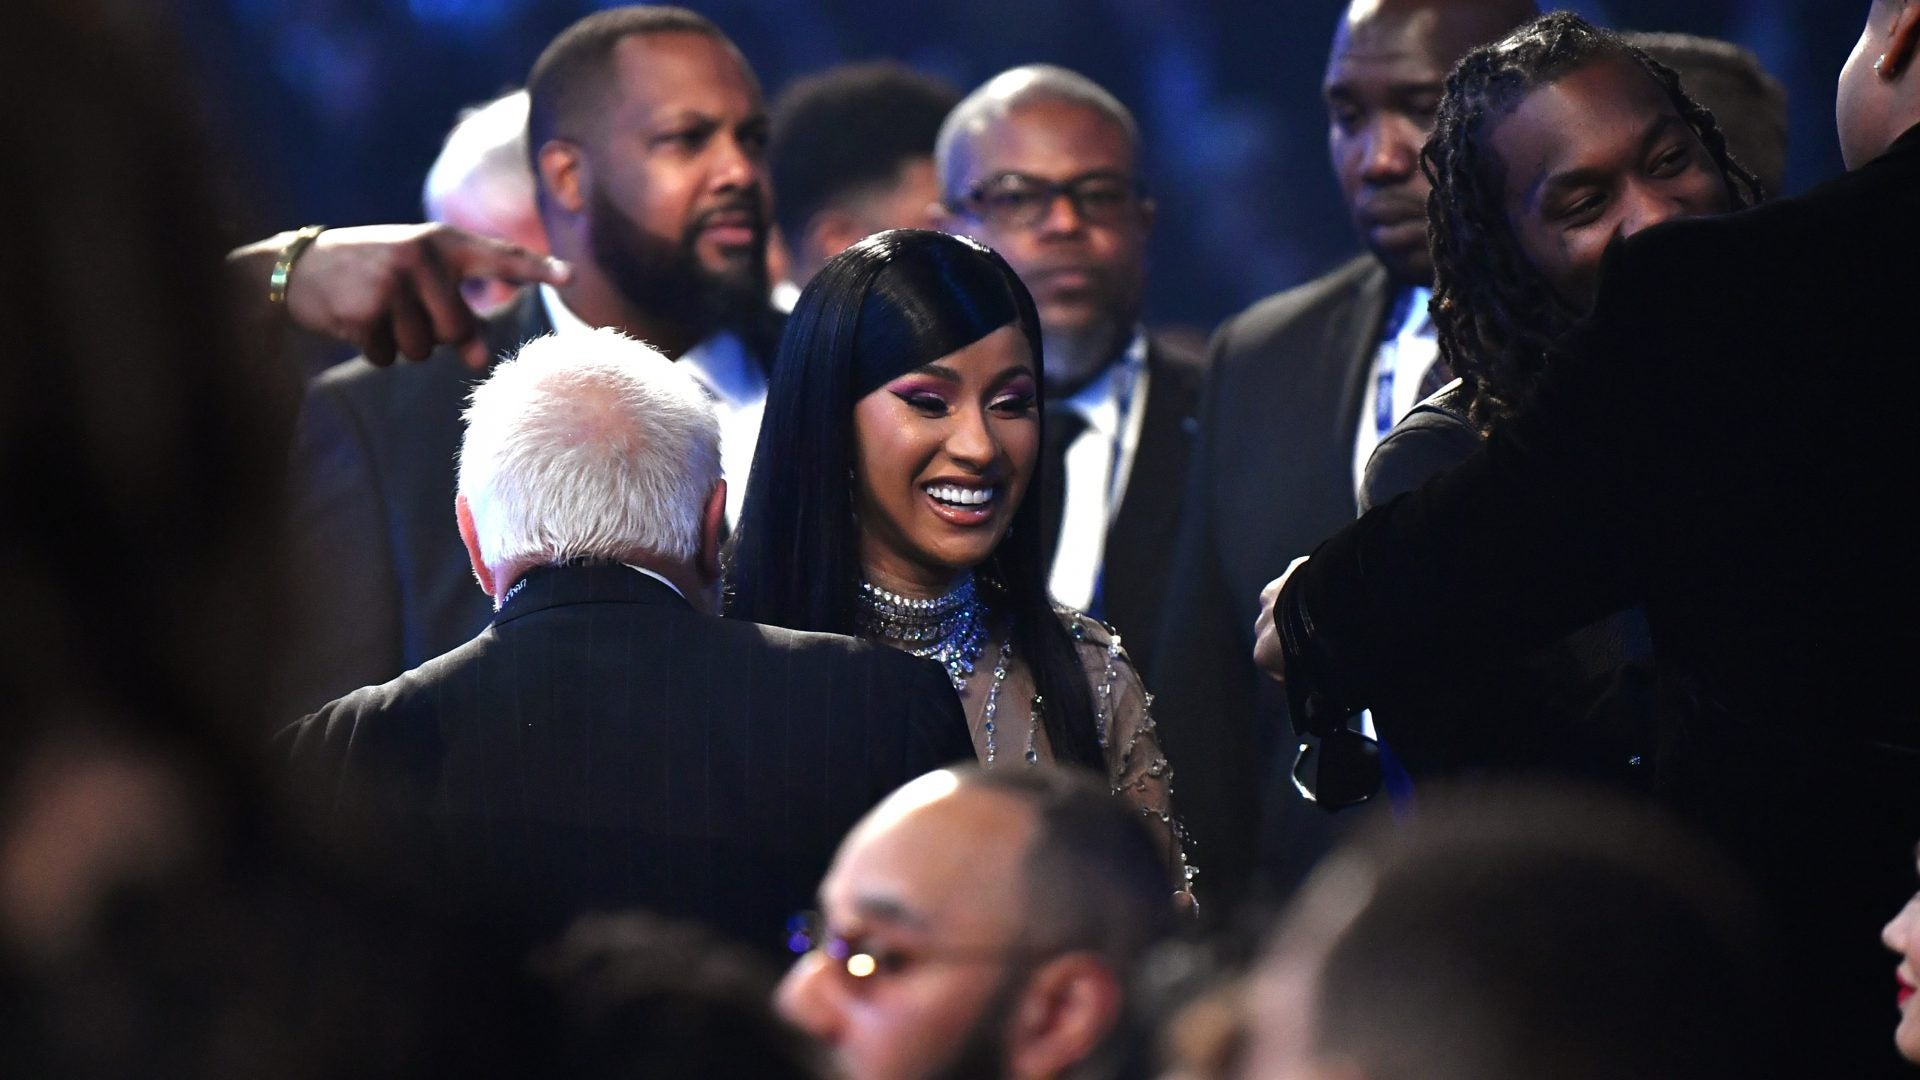 Cardi B Skipped The Grammys Red Carpet But Here's Her Look